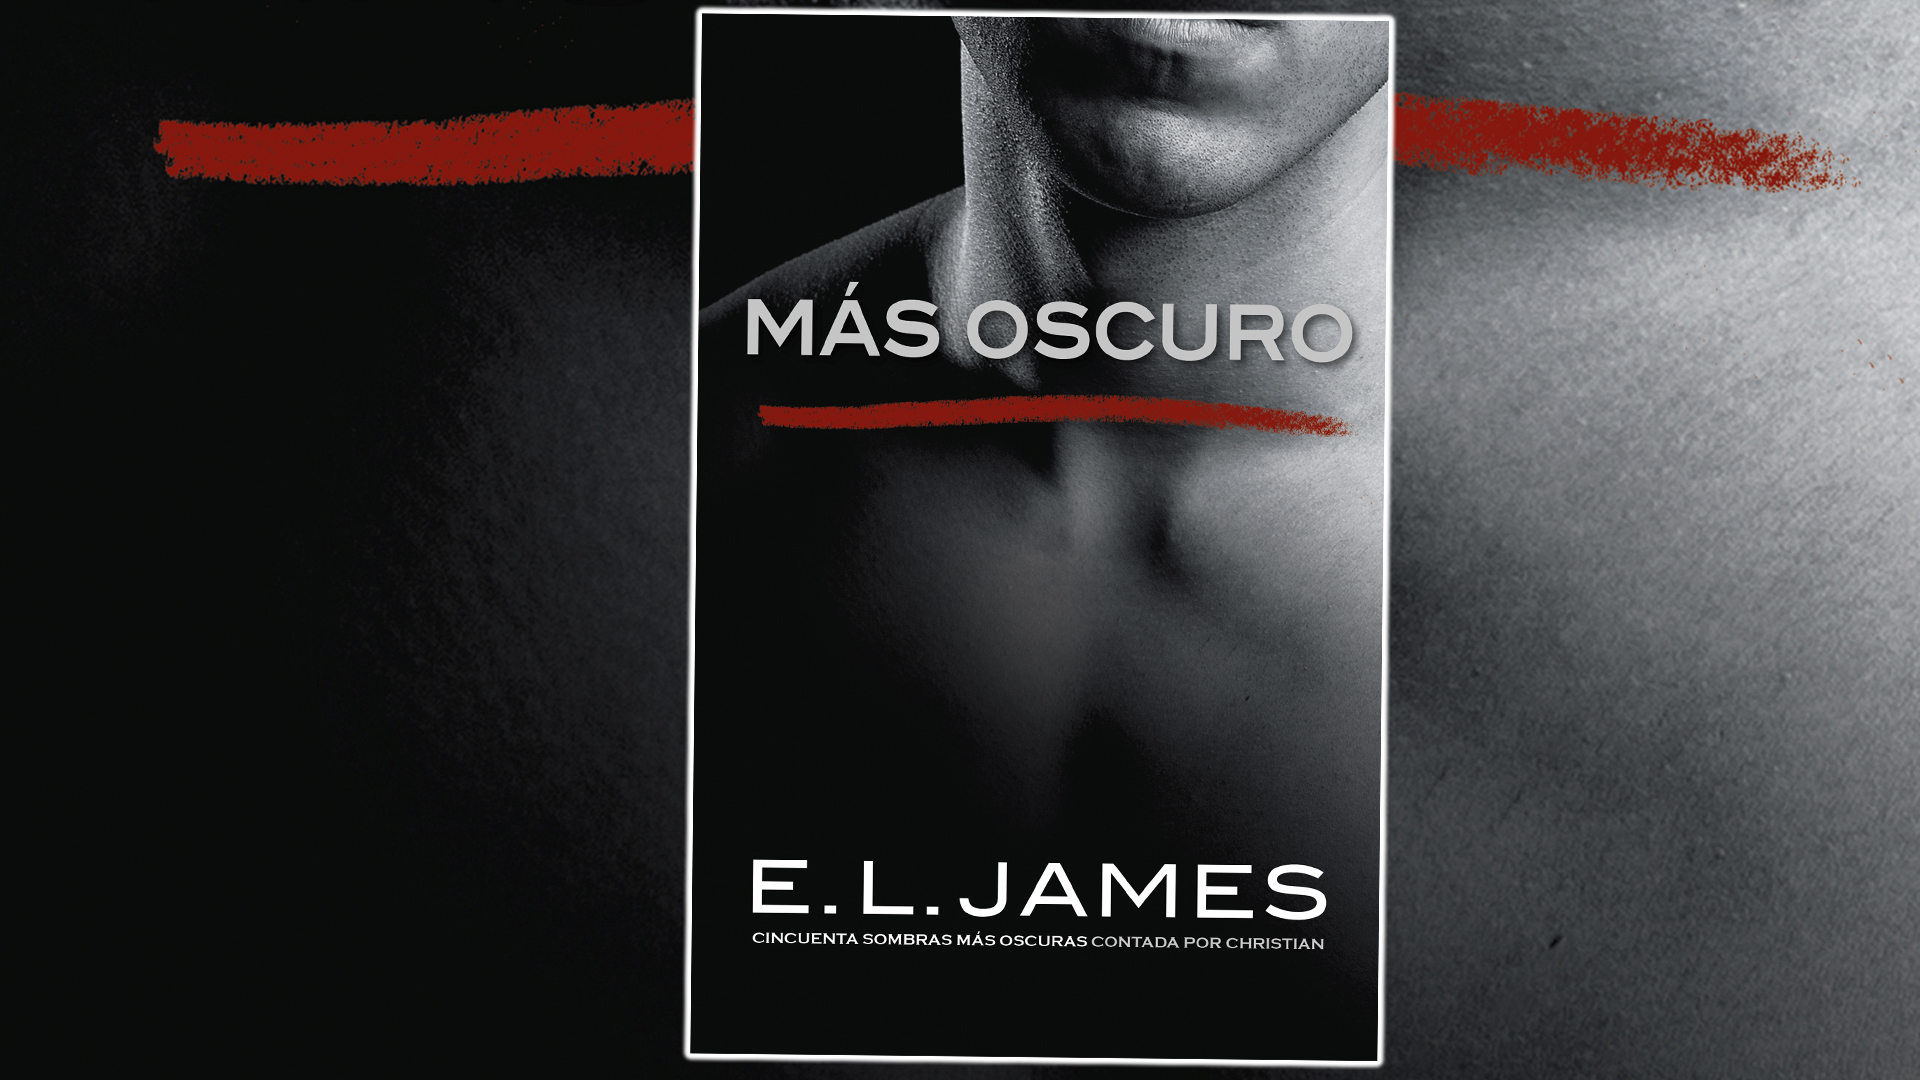 Grey Libro Pdf Regresa Christian Grey Y E L James Con Más Oscuro